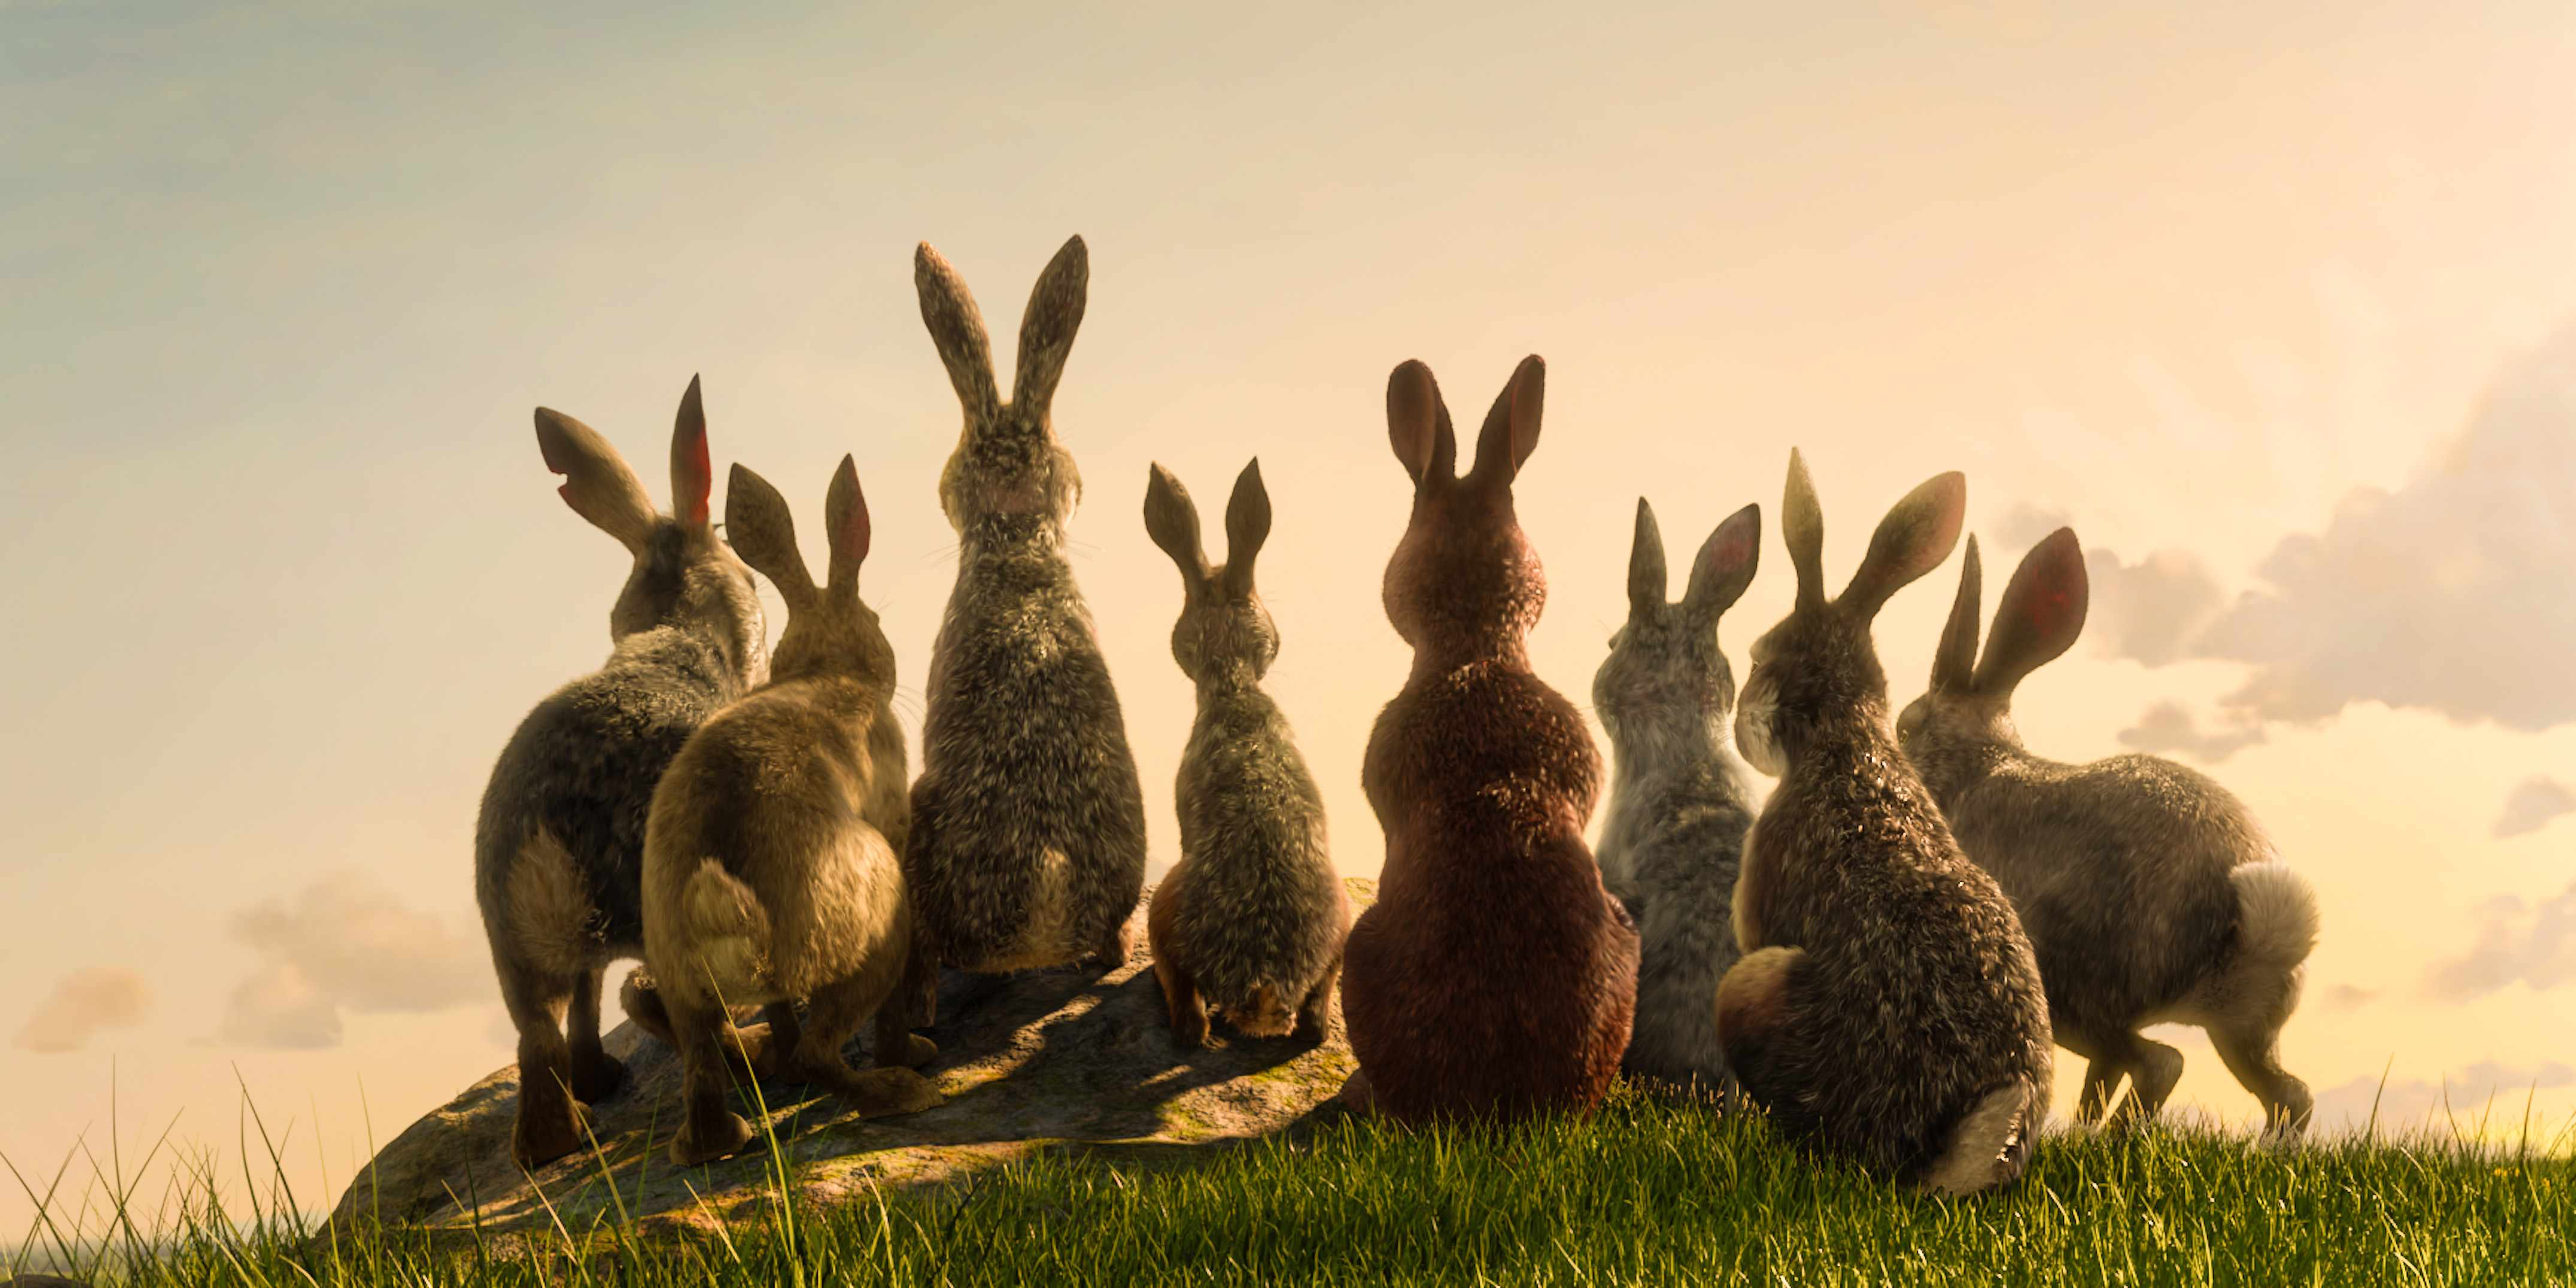 Watership Down - coming to BBC One this Christmas